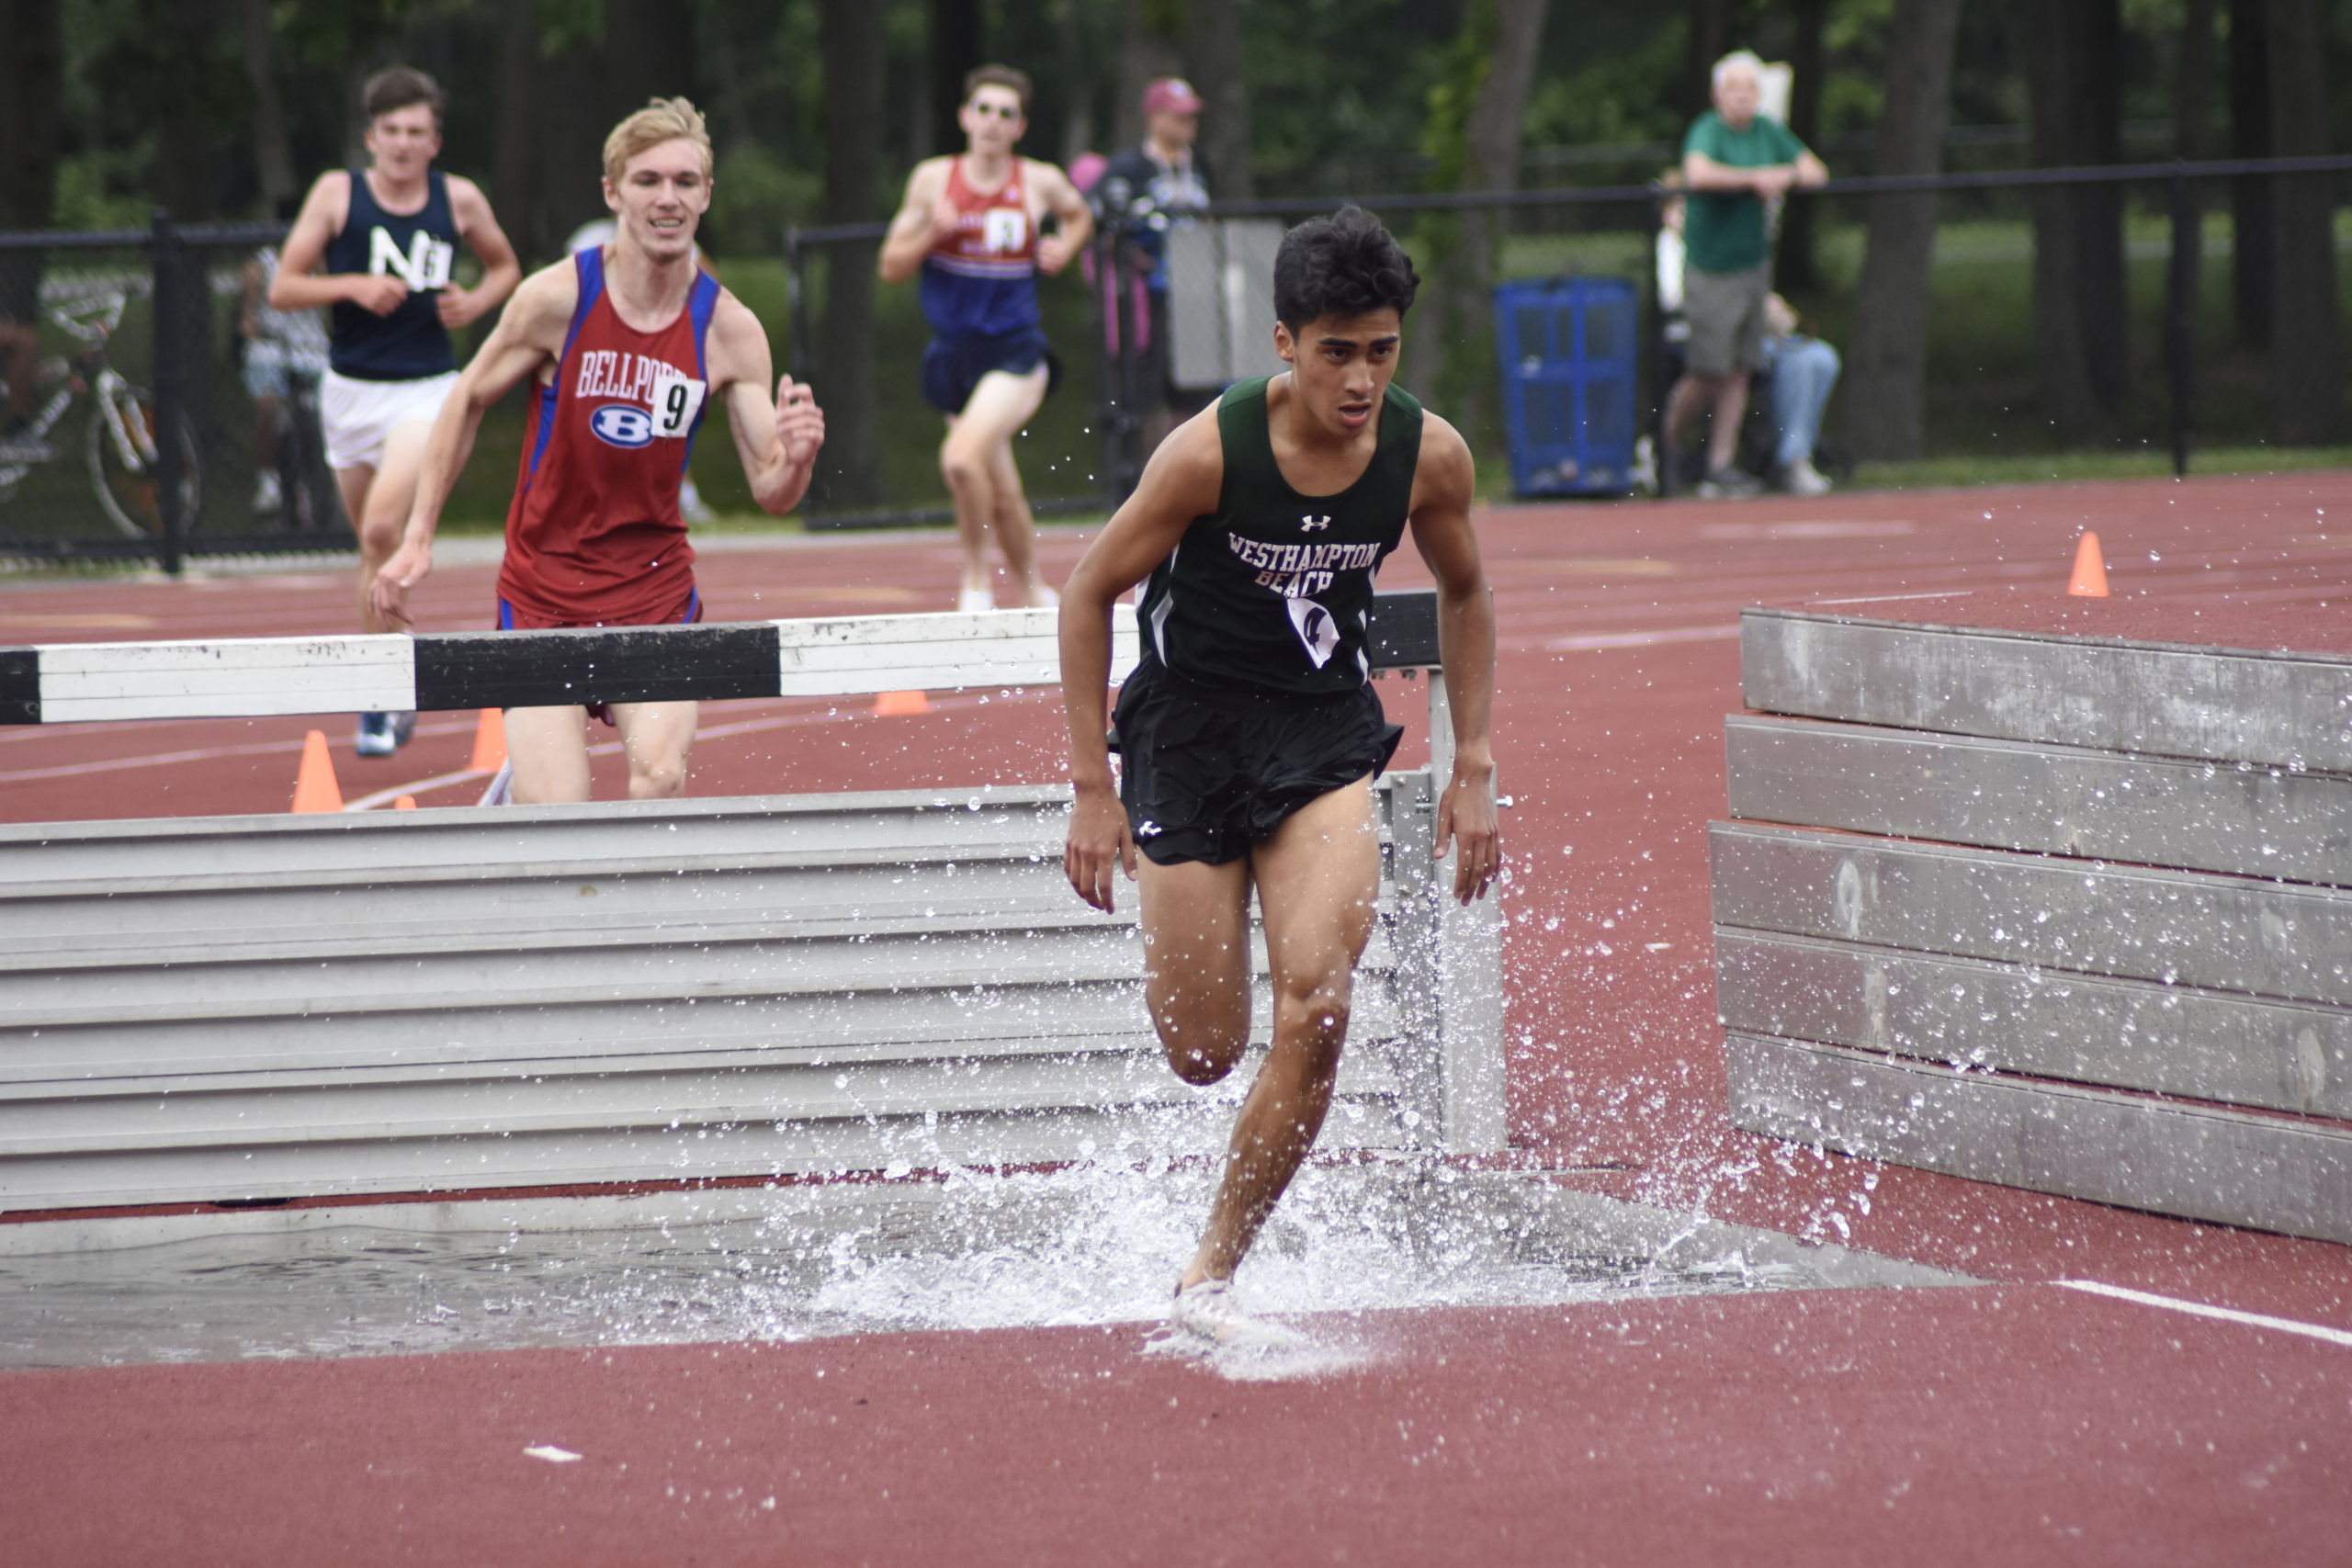 Junior Hurricane David Alvarado placed fourth in the 3,000-meter steeplechase earning All-County honors.